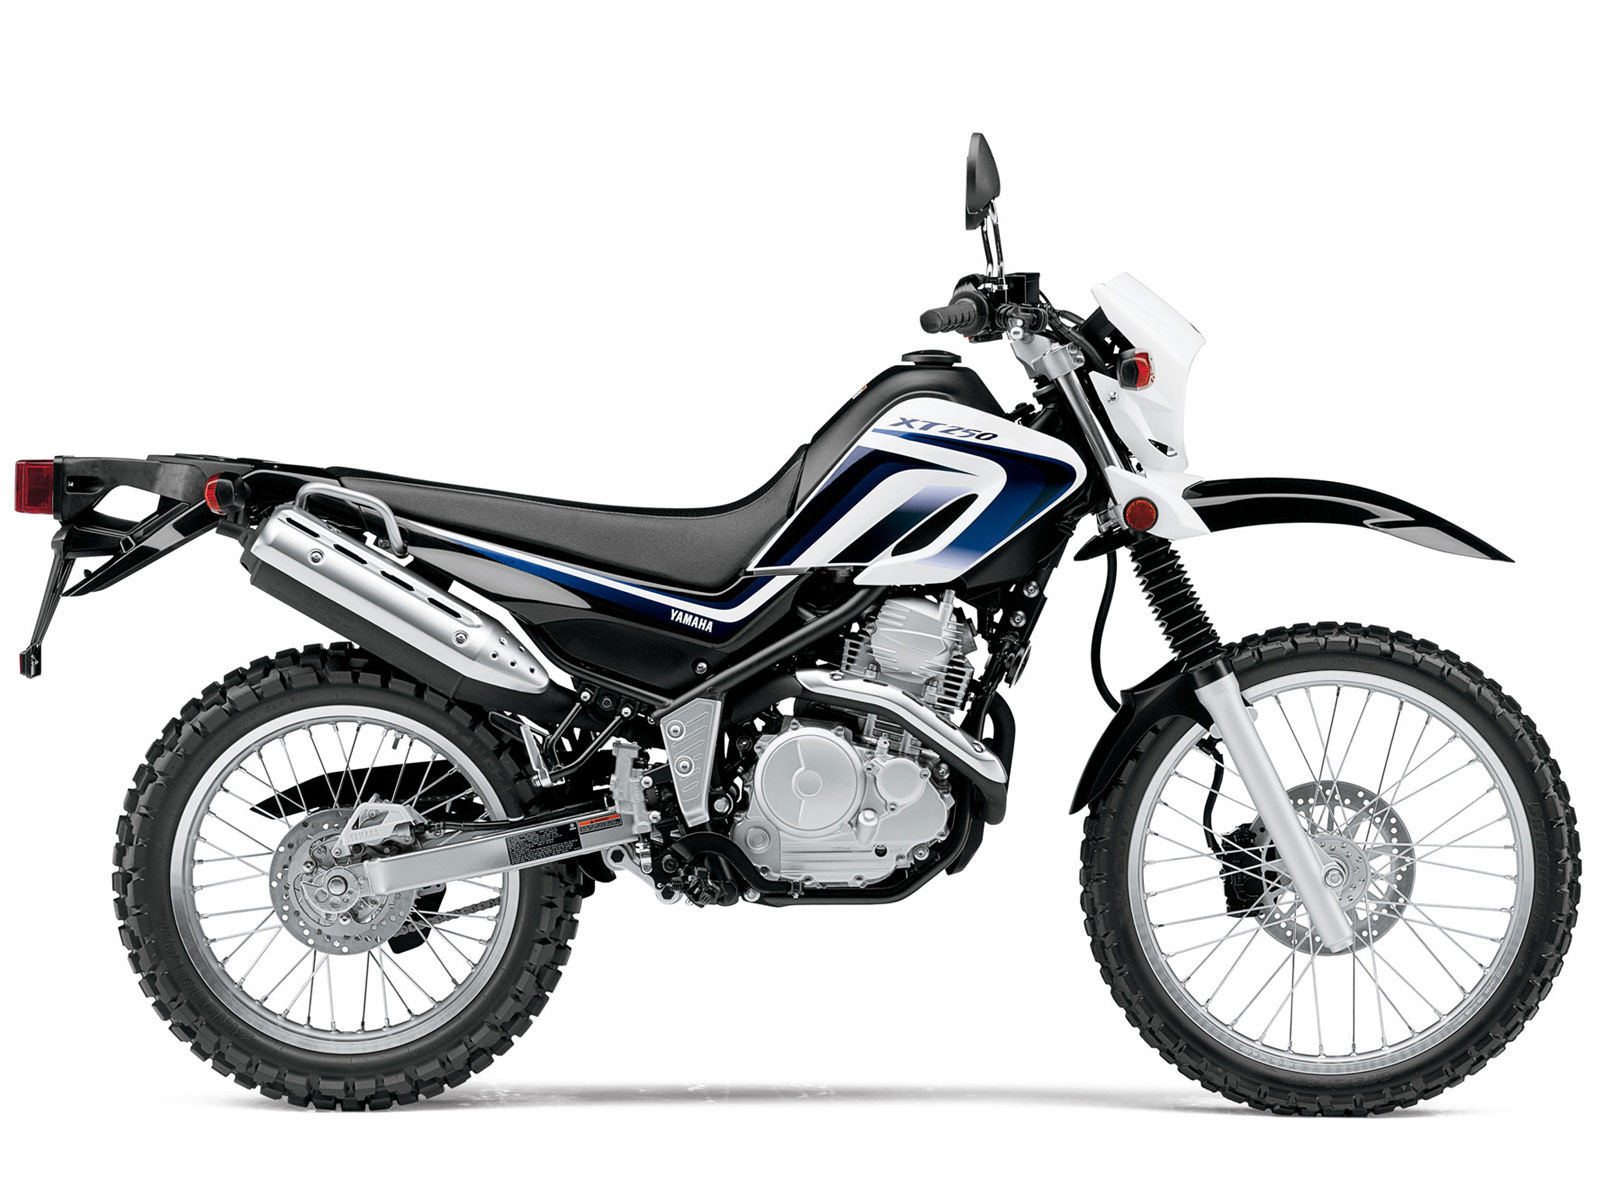 2013 Yamaha XT250 Review, photos, specifications, insurance